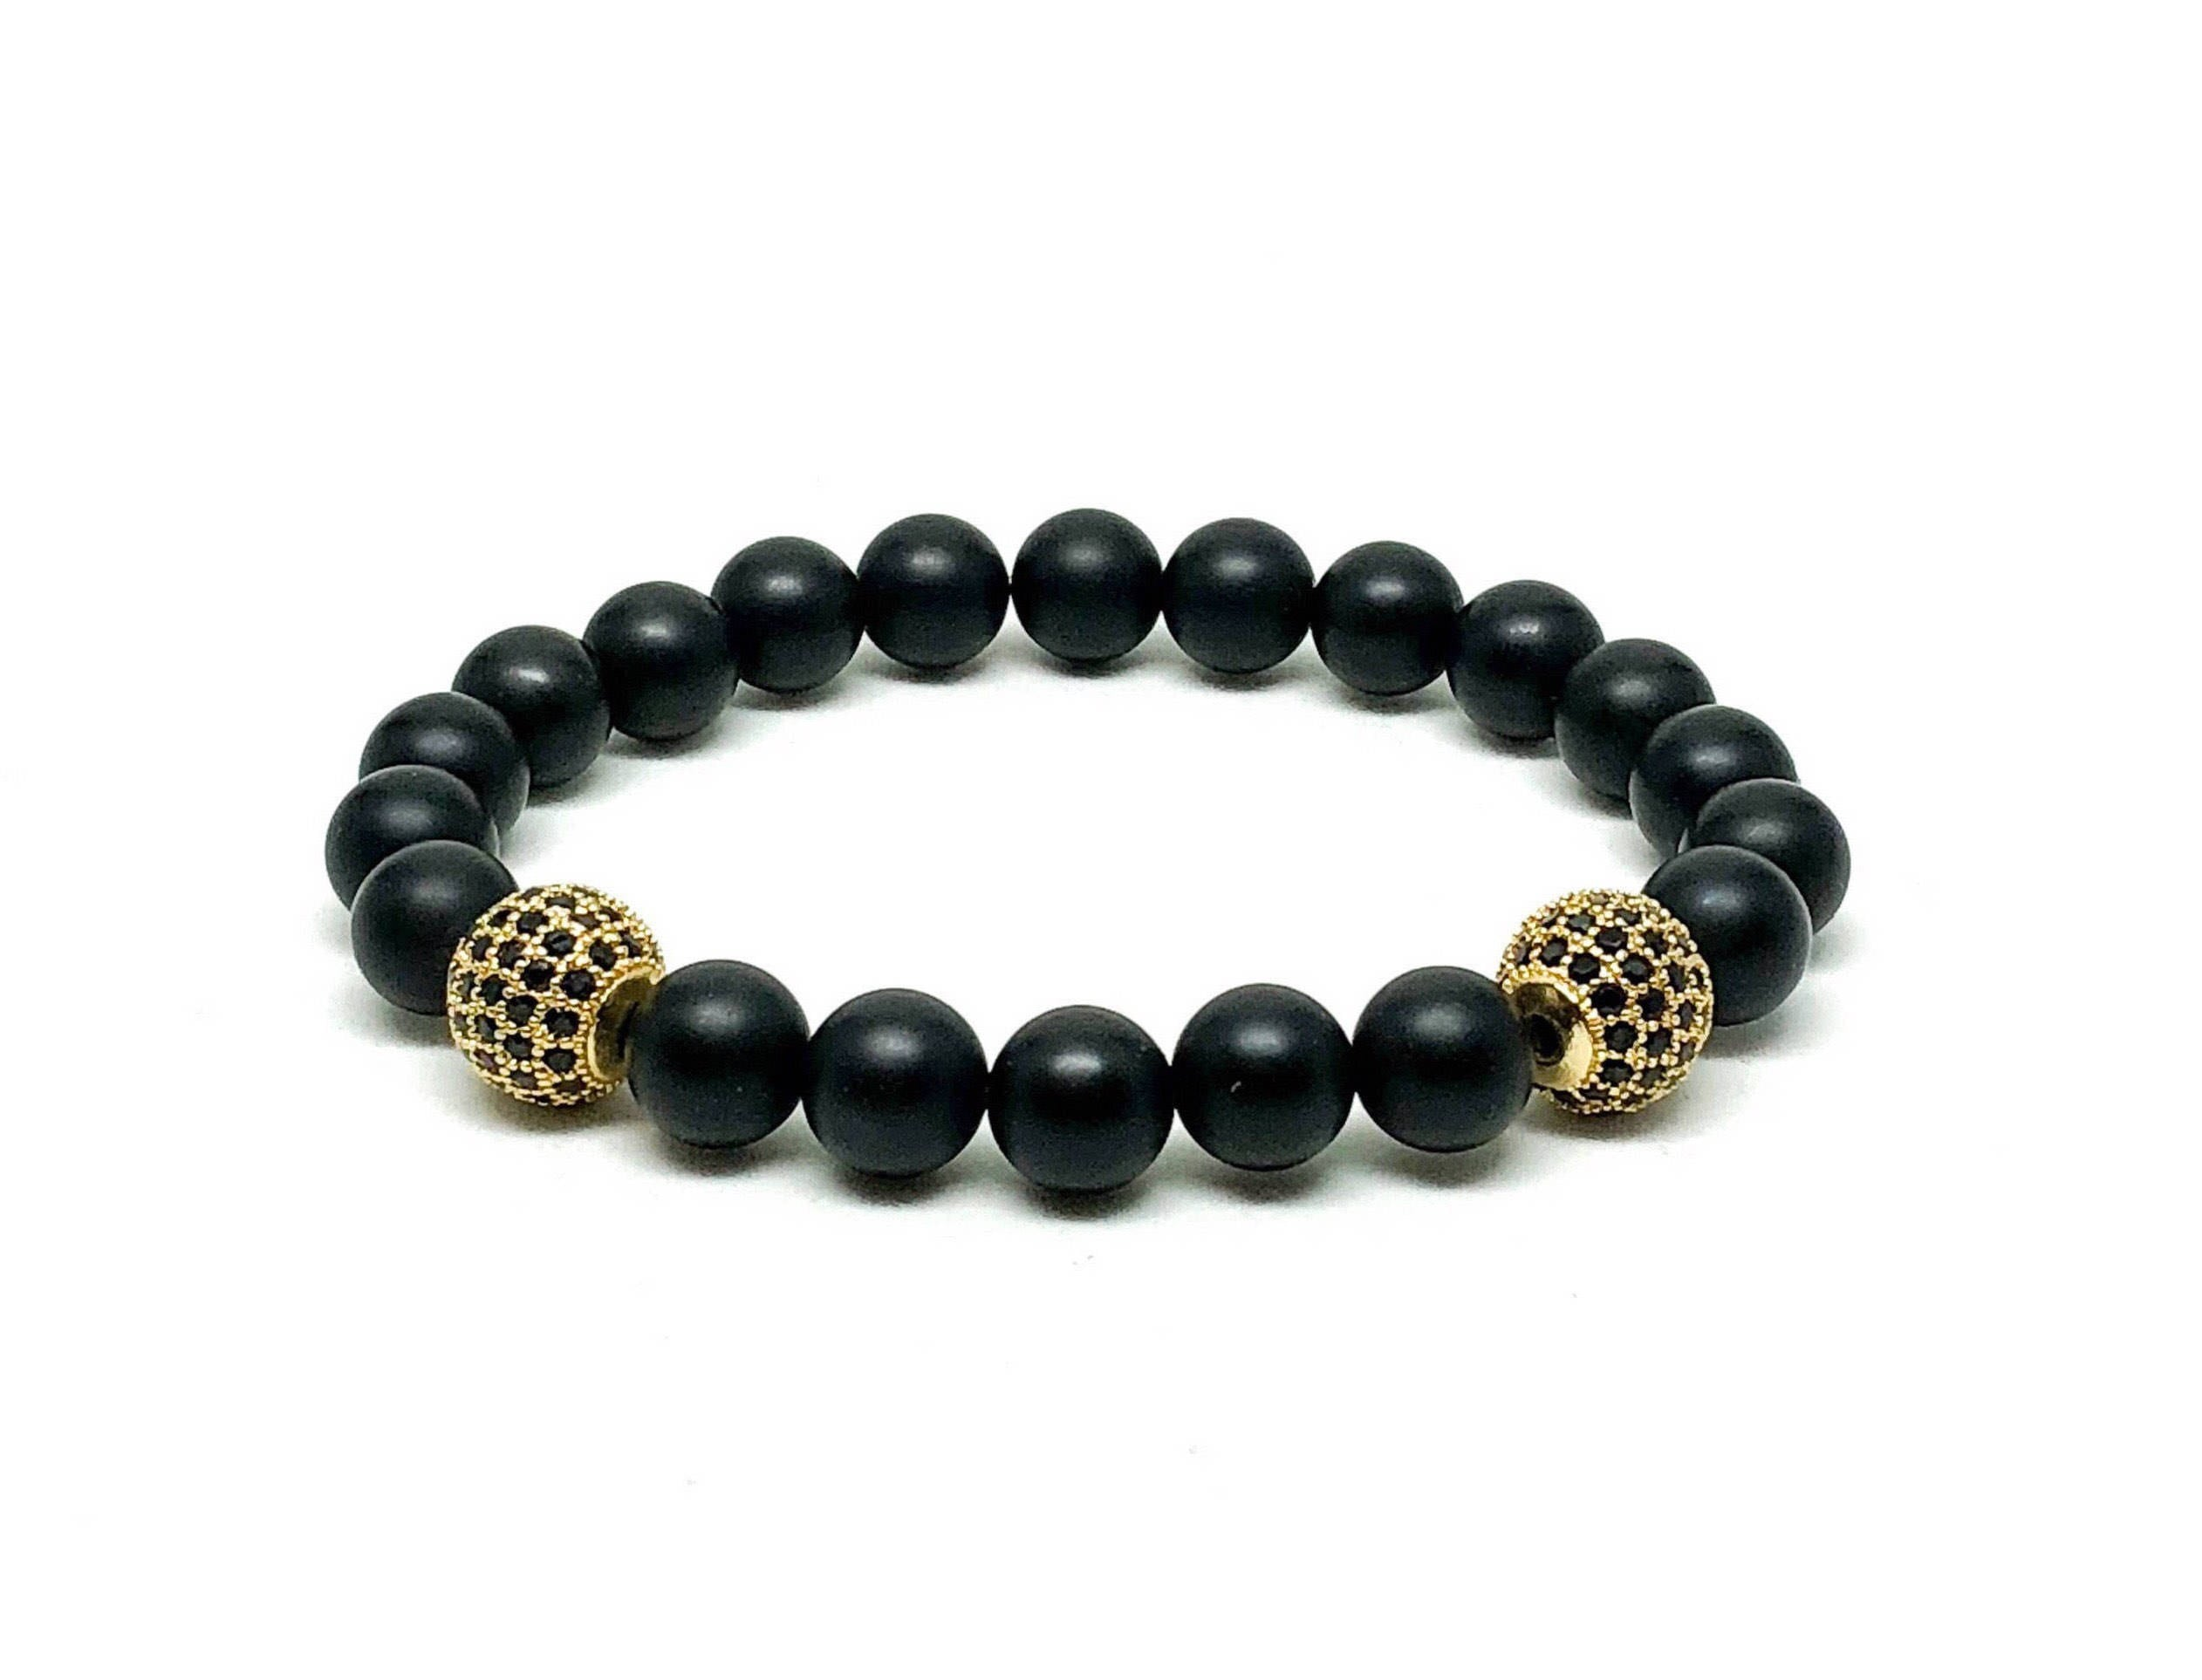 lrm black export joker product bracelet exries matte